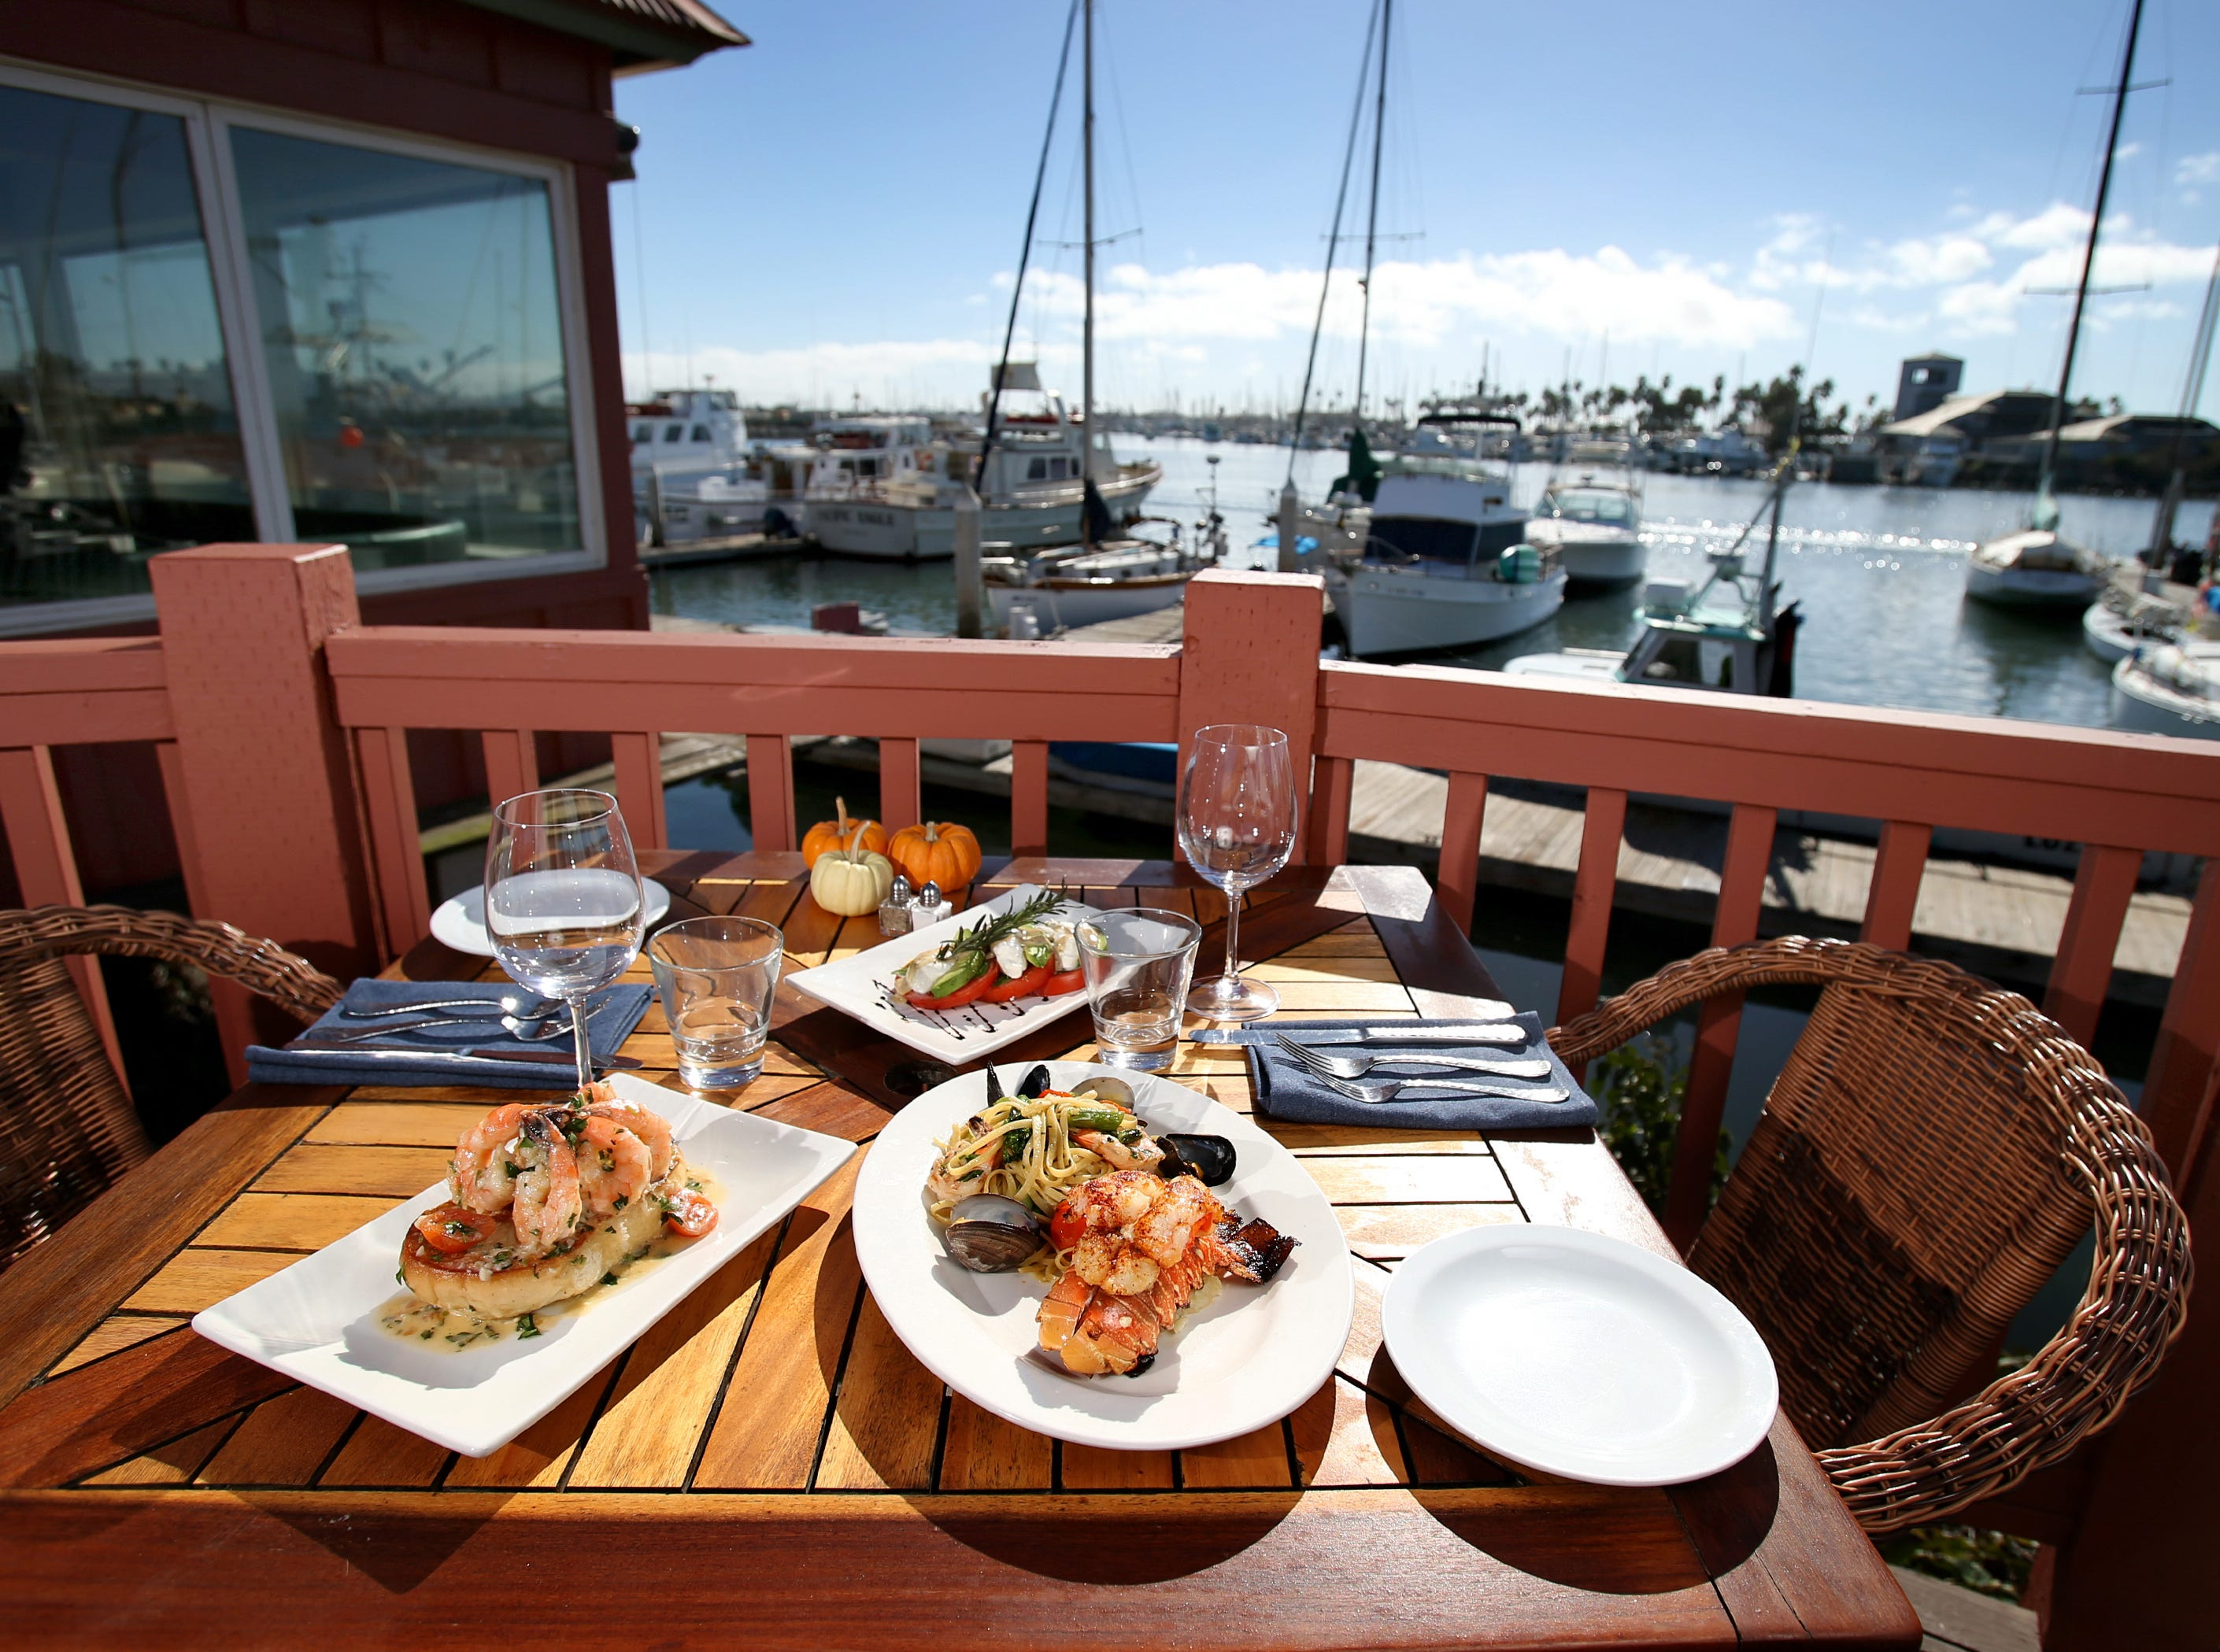 Water's Edge Restaurant and Bar is Ventura Harbor's newest waterfront restaurant. Pictured is its Garlic Shrimp Boat (left), Mediterranean-Style Lobster Tail and Cali-Prese Salad (back).